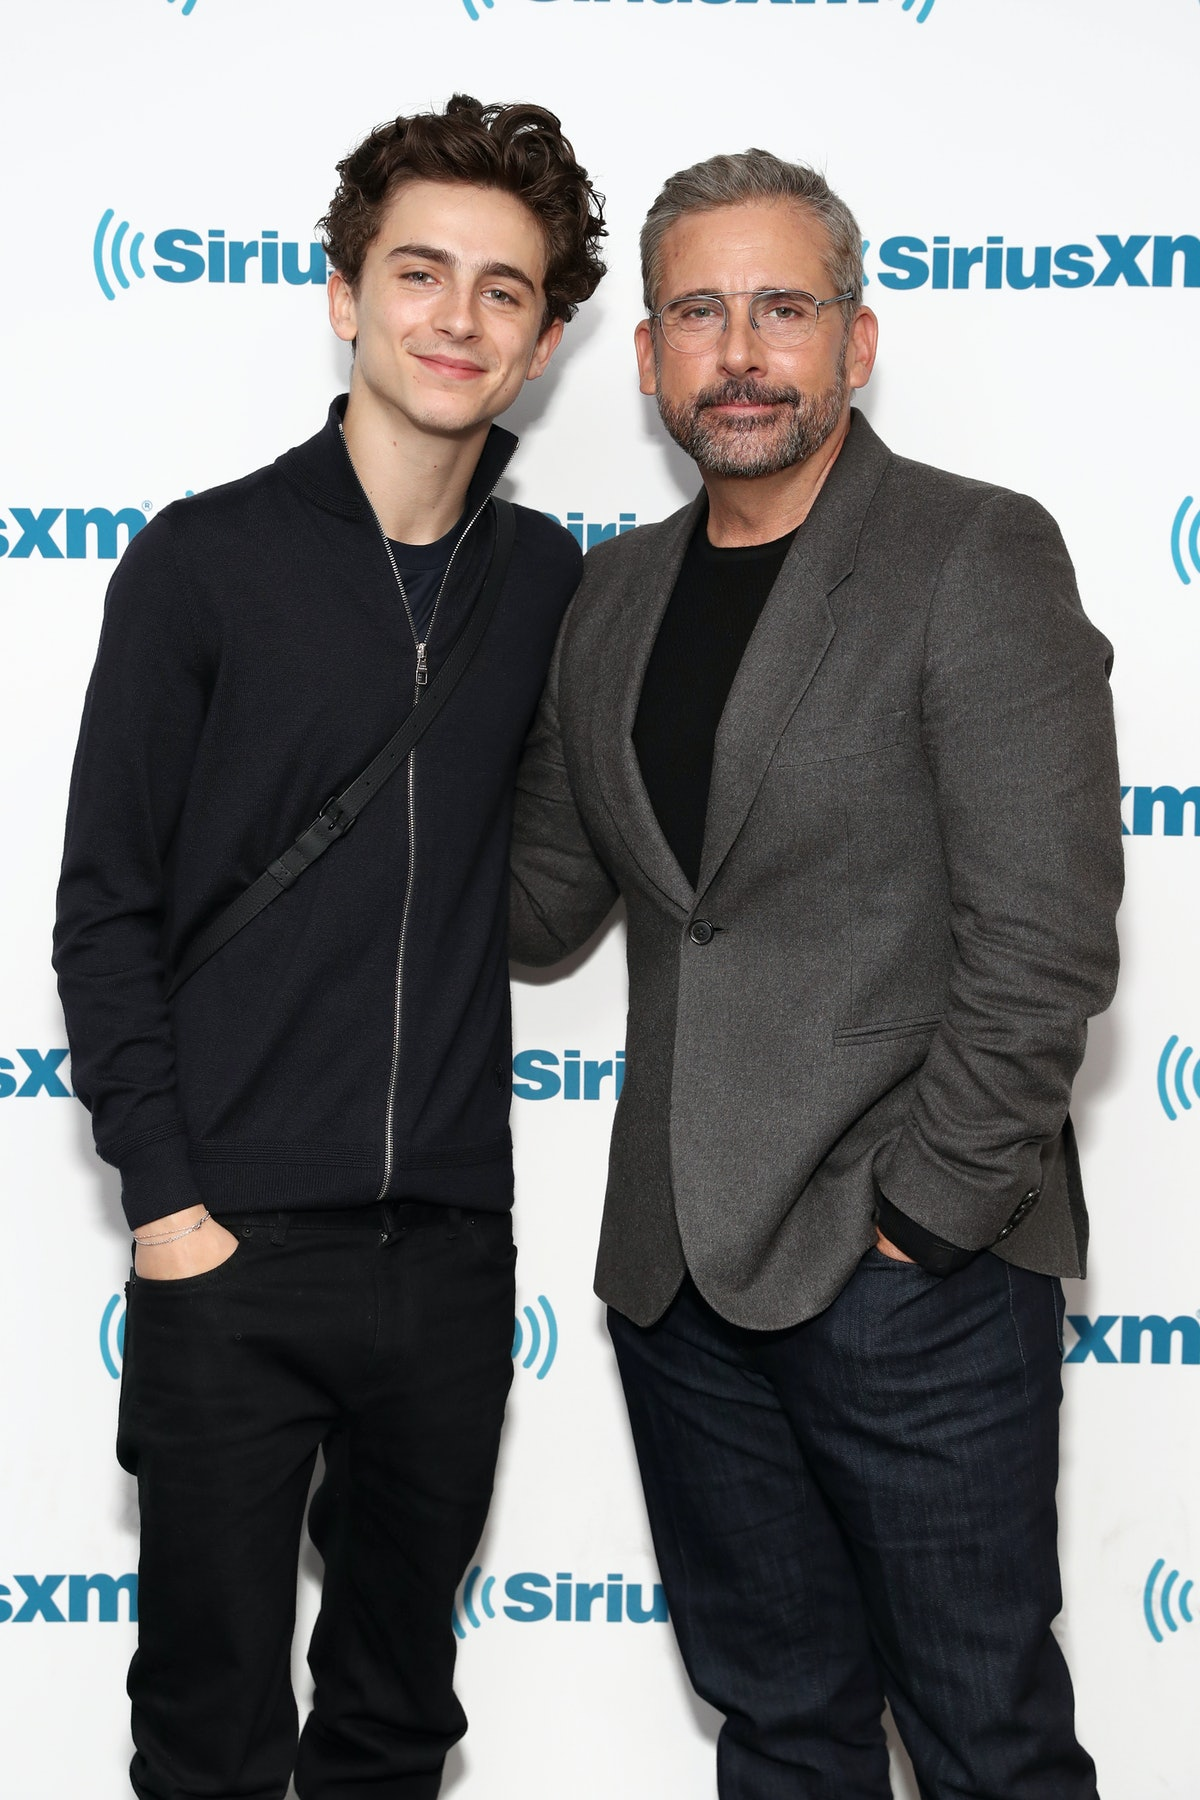 Timothee Chalamet's Steve Carrell Comments Show He's 'The Office' Actor's Biggest Fan — VIDEO